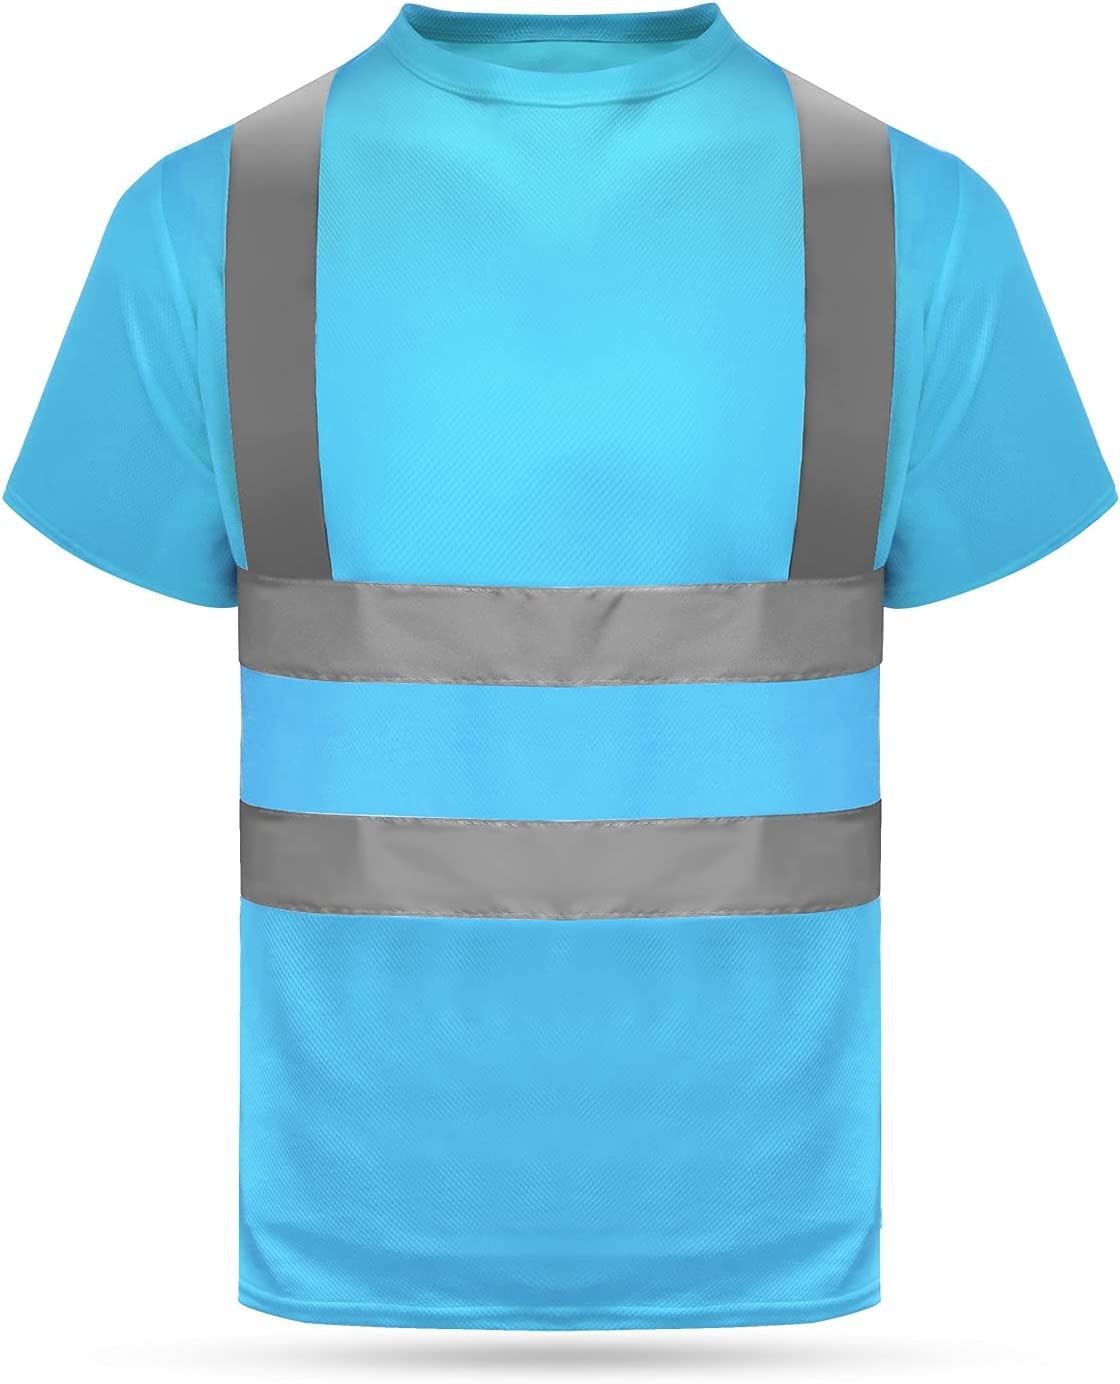 HYCOPROT Max 84% OFF High Vis Reflective T Shirt Sleeve Mesh Short Qu Max 50% OFF Safety